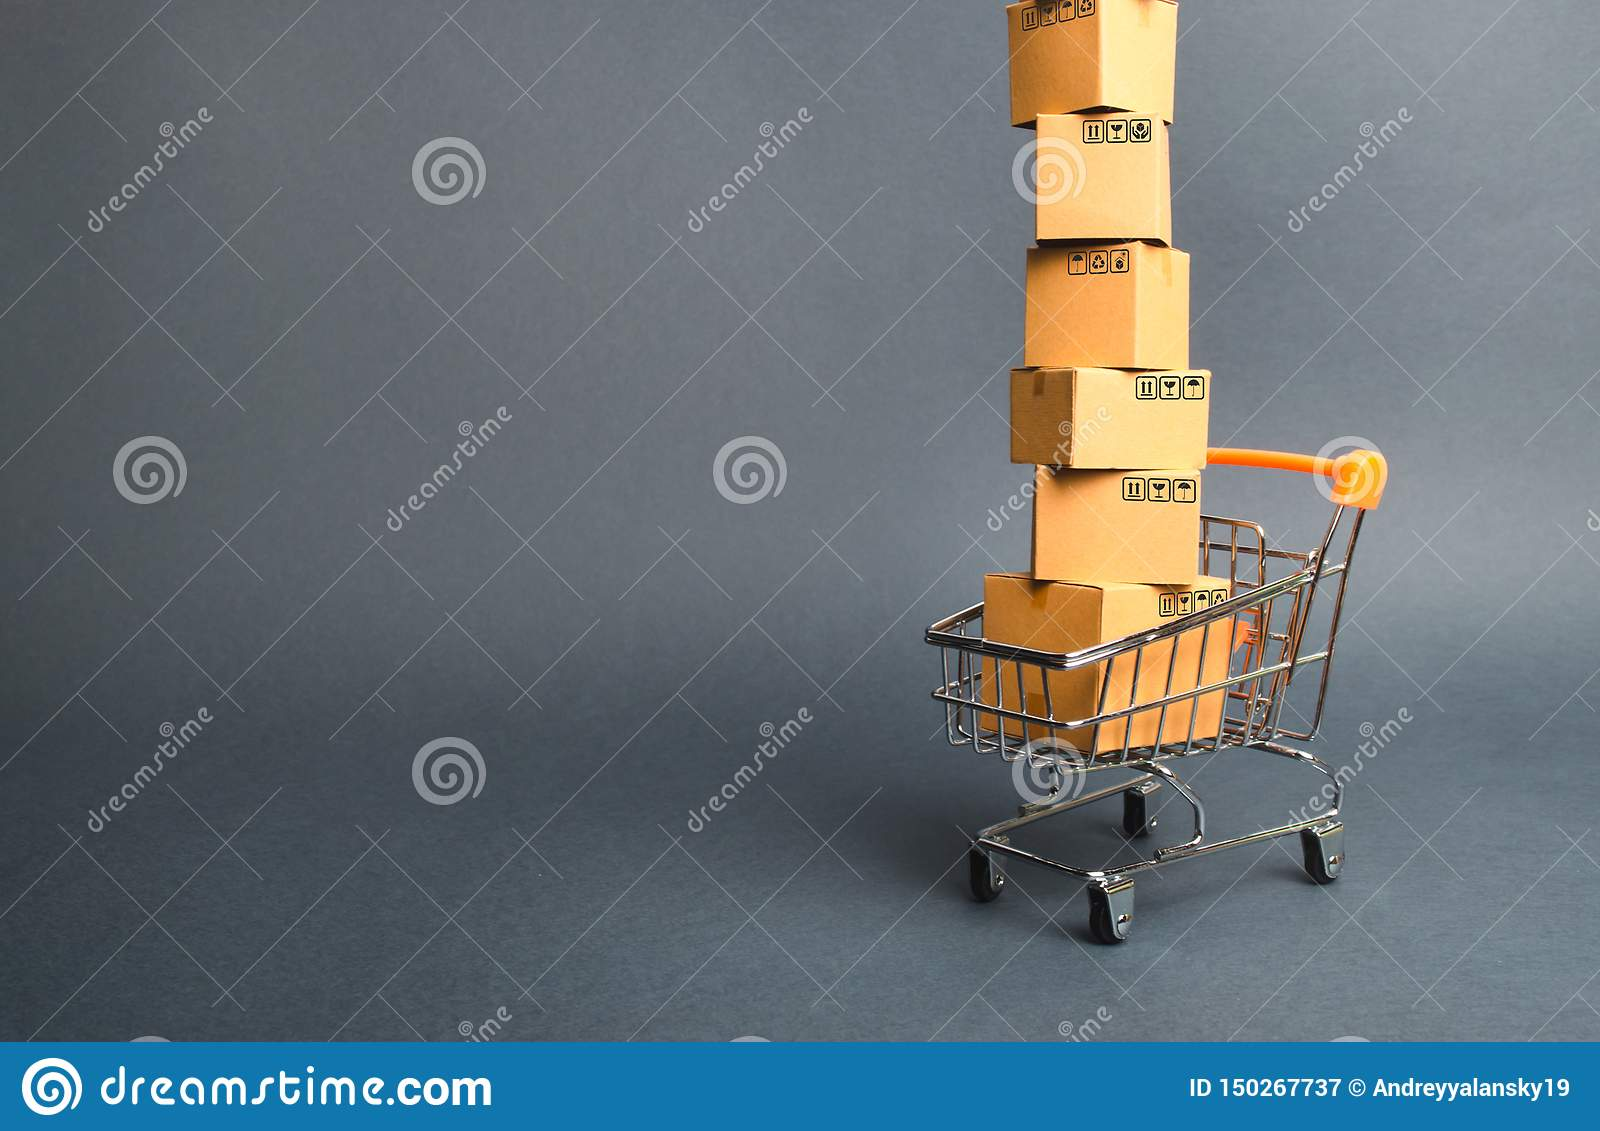 High tower of cardboard boxes on a supermarket trolley. concept of shopping in online store. E-commerce, sales and sale of goods